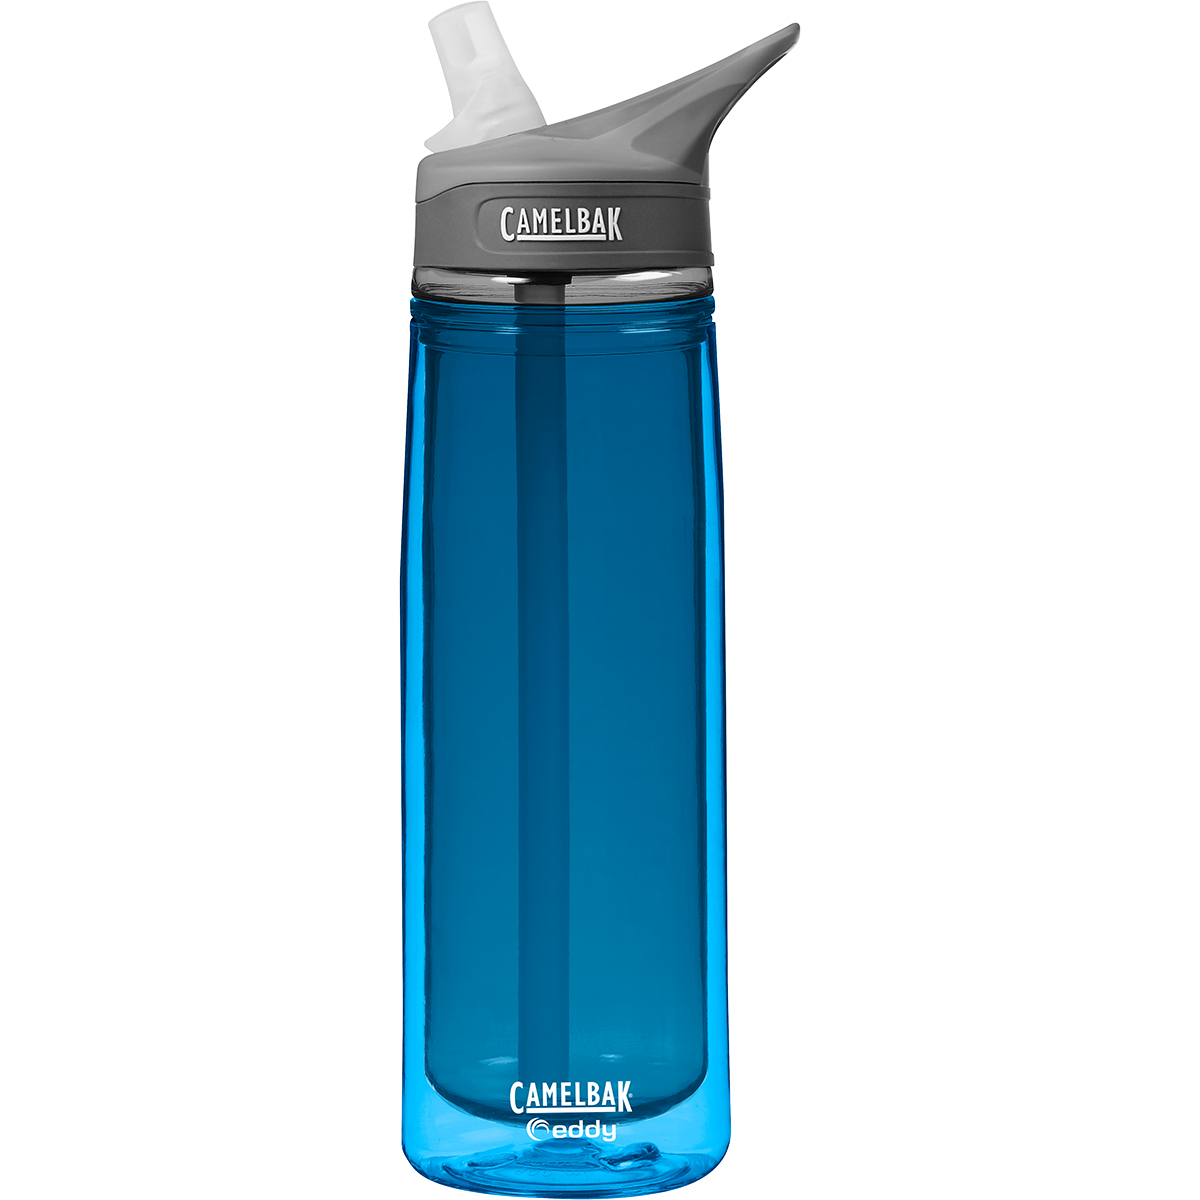 Camelbak-6L-Eddy-Insulated-Water-Bottle thumbnail 7